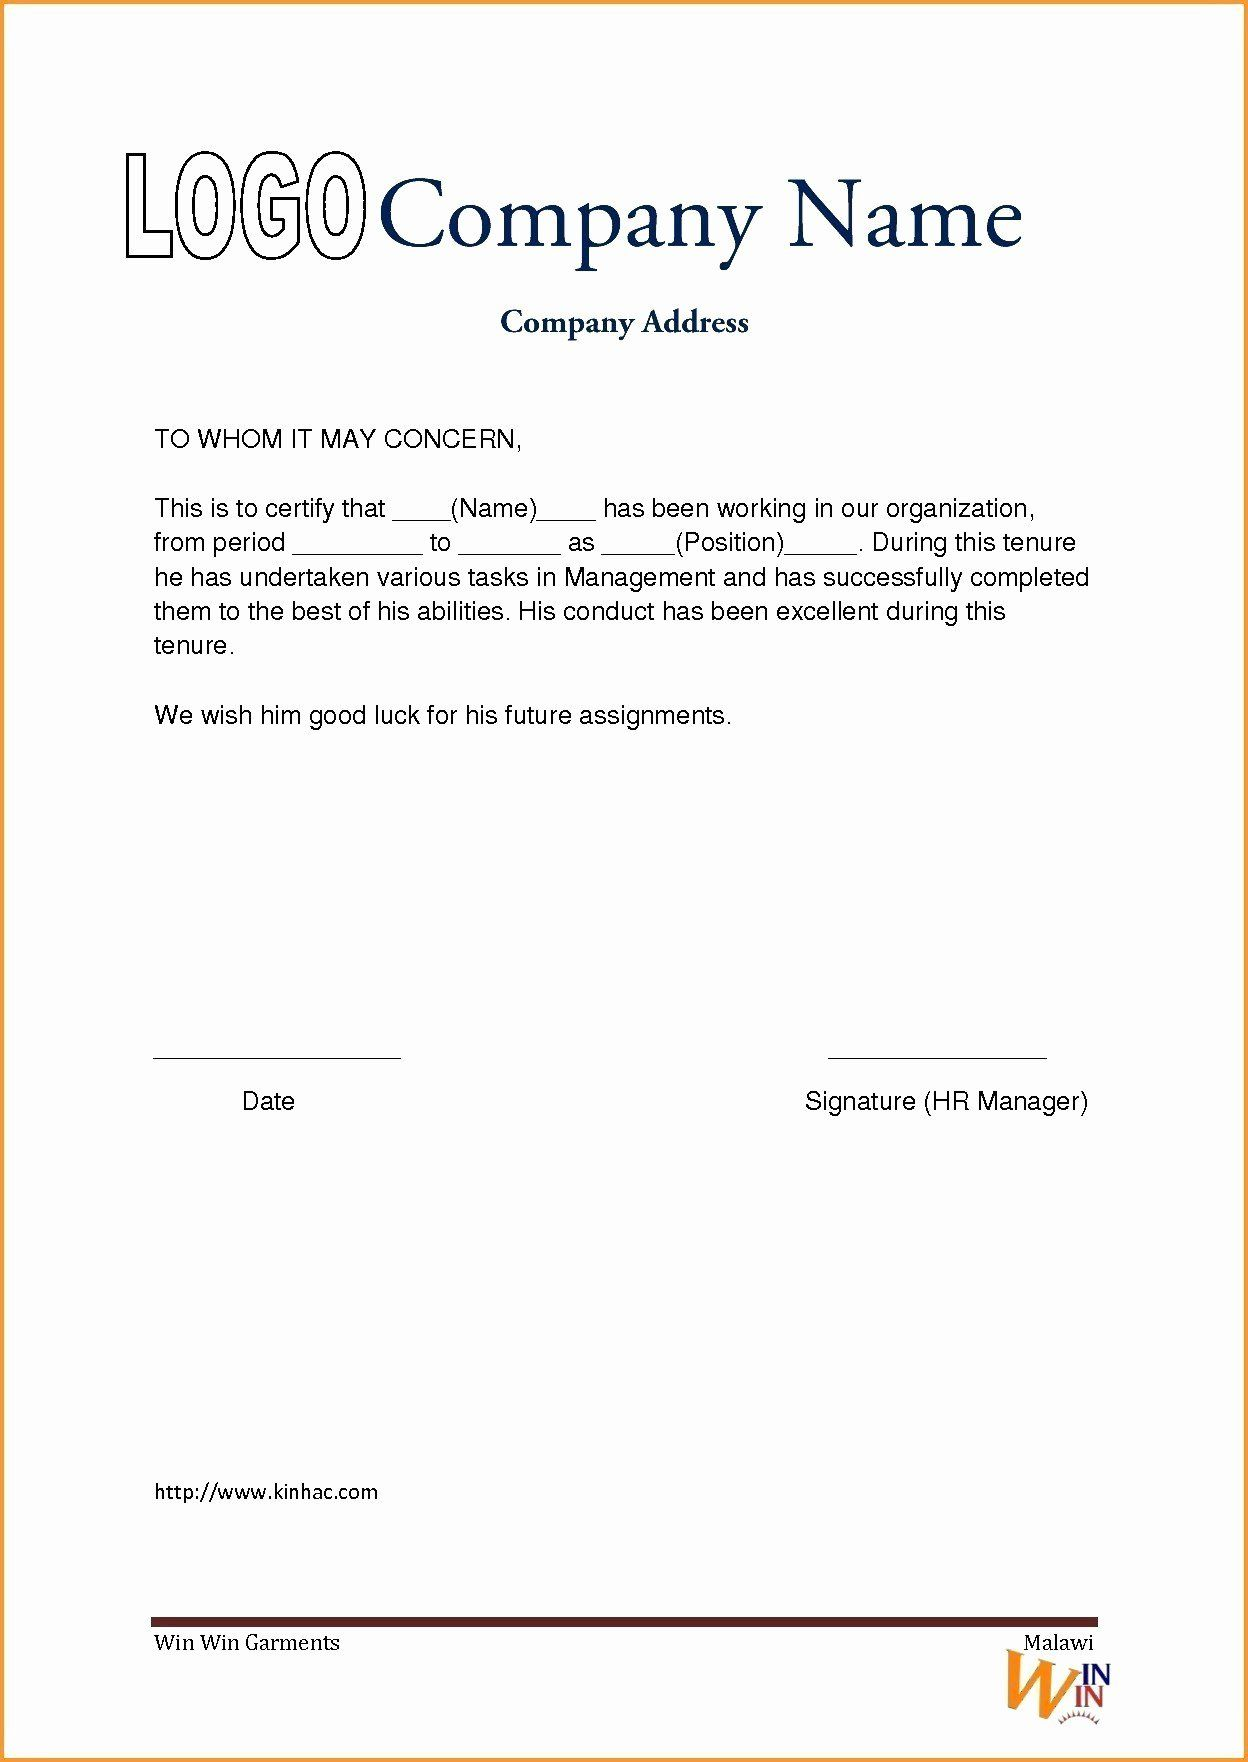 The Best Of Luck In 2020 Certificate Format Work Reference